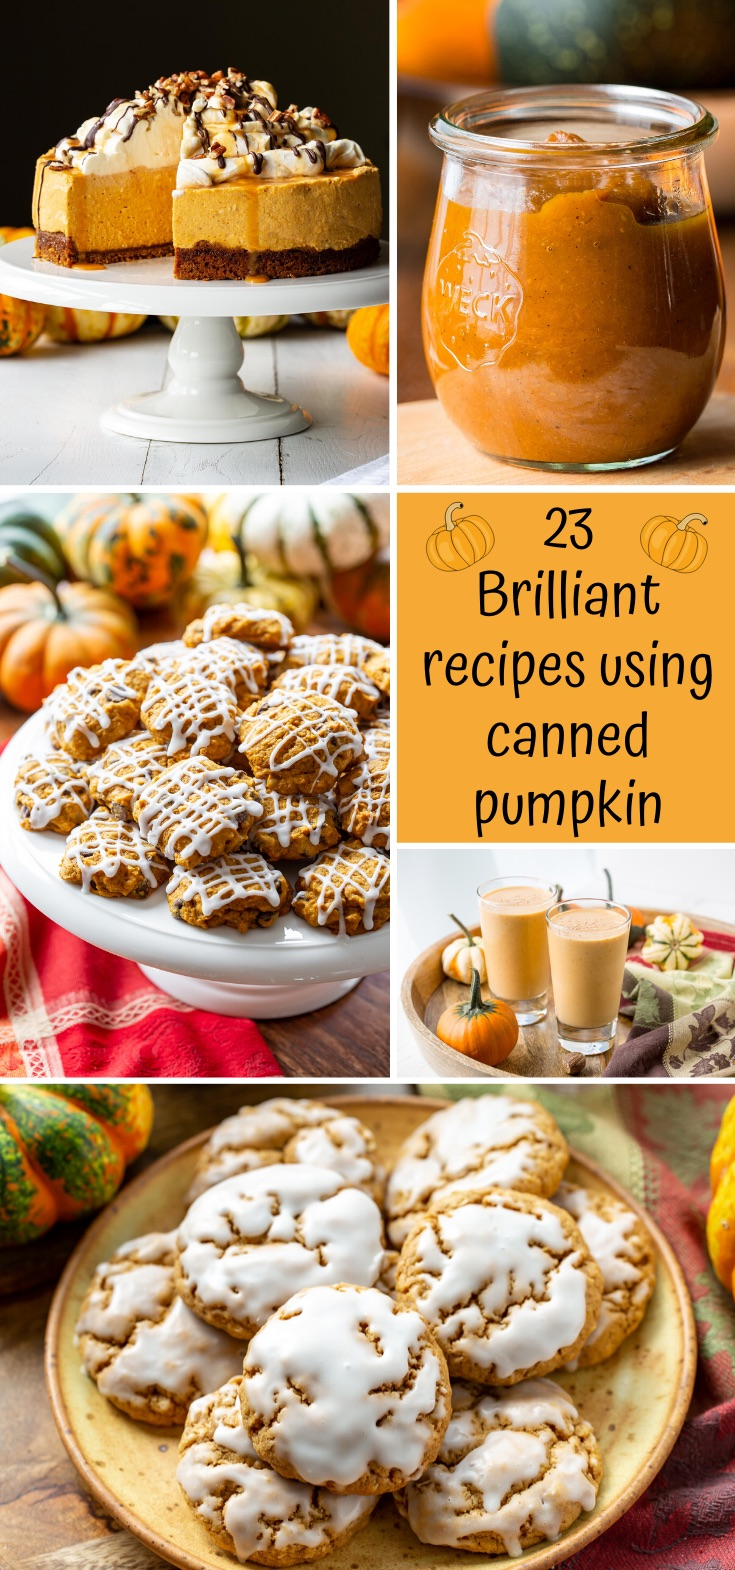 23 Brilliant Recipes using Canned Pumpkin #pumpkinpureerecipes 23 brilliant recipes using canned pumpkin puree! A wonderful add-in to all our fall baked goods, savory dinners, breakfast favorites, soups and desserts. #savingroomfordessert #pumpkin #pumpkinrecipes #fallfavorites #recipesusingpumpkin #fallbaking #pumpkincookies #pumpkinsmoothie #pumpkincake #pumpkincheesecake #pumpkinbutter #recipeswithcannedpumpkin #pumpkinpureerecipes